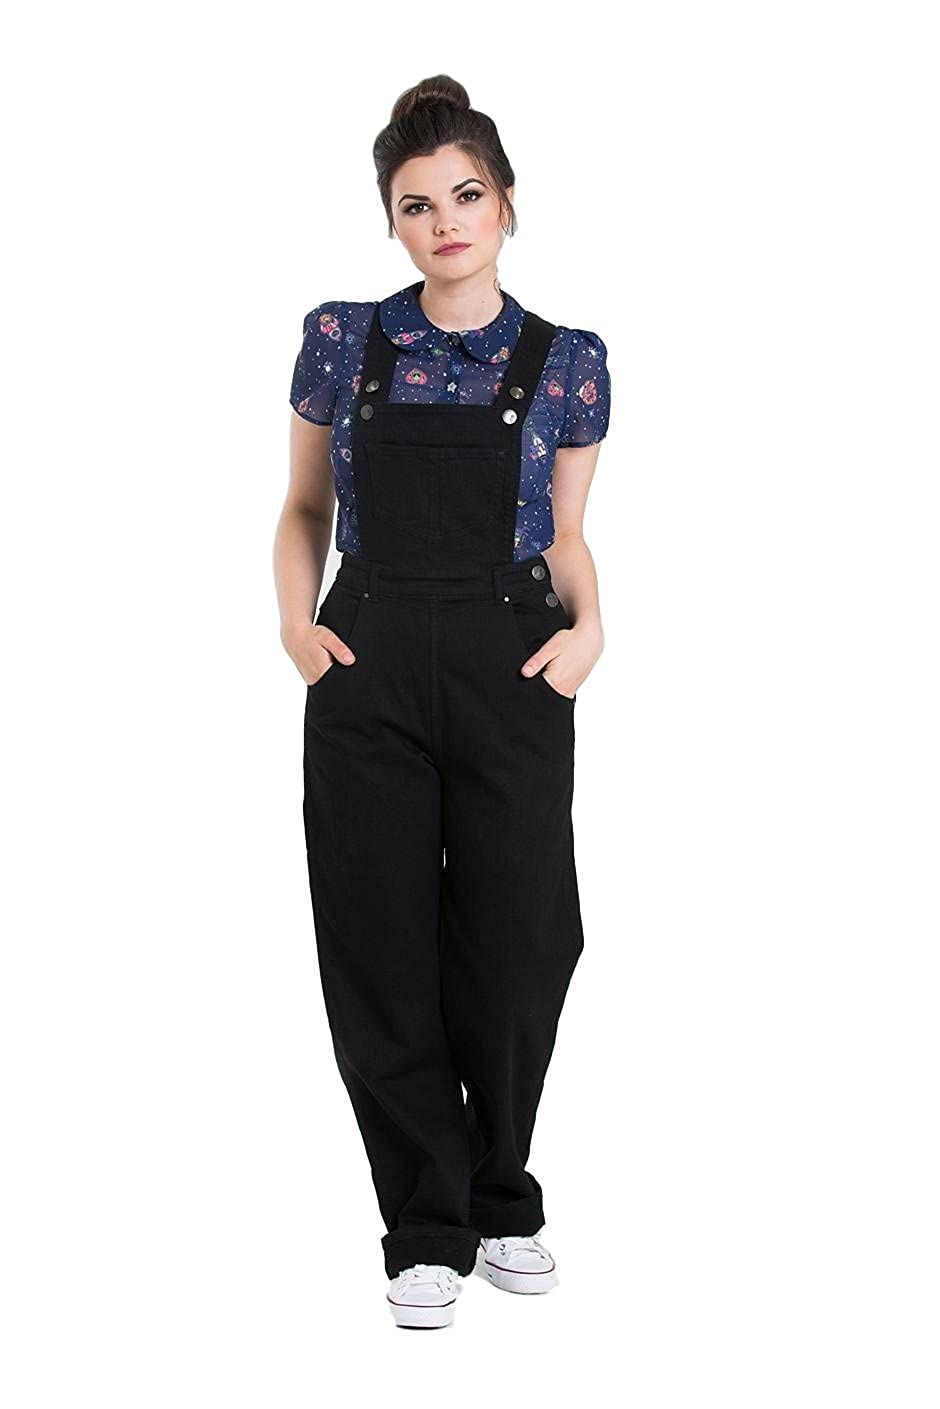 1950s Pants History for Women Hell Bunny Ella May Denim Dungarees £47.99 AT vintagedancer.com